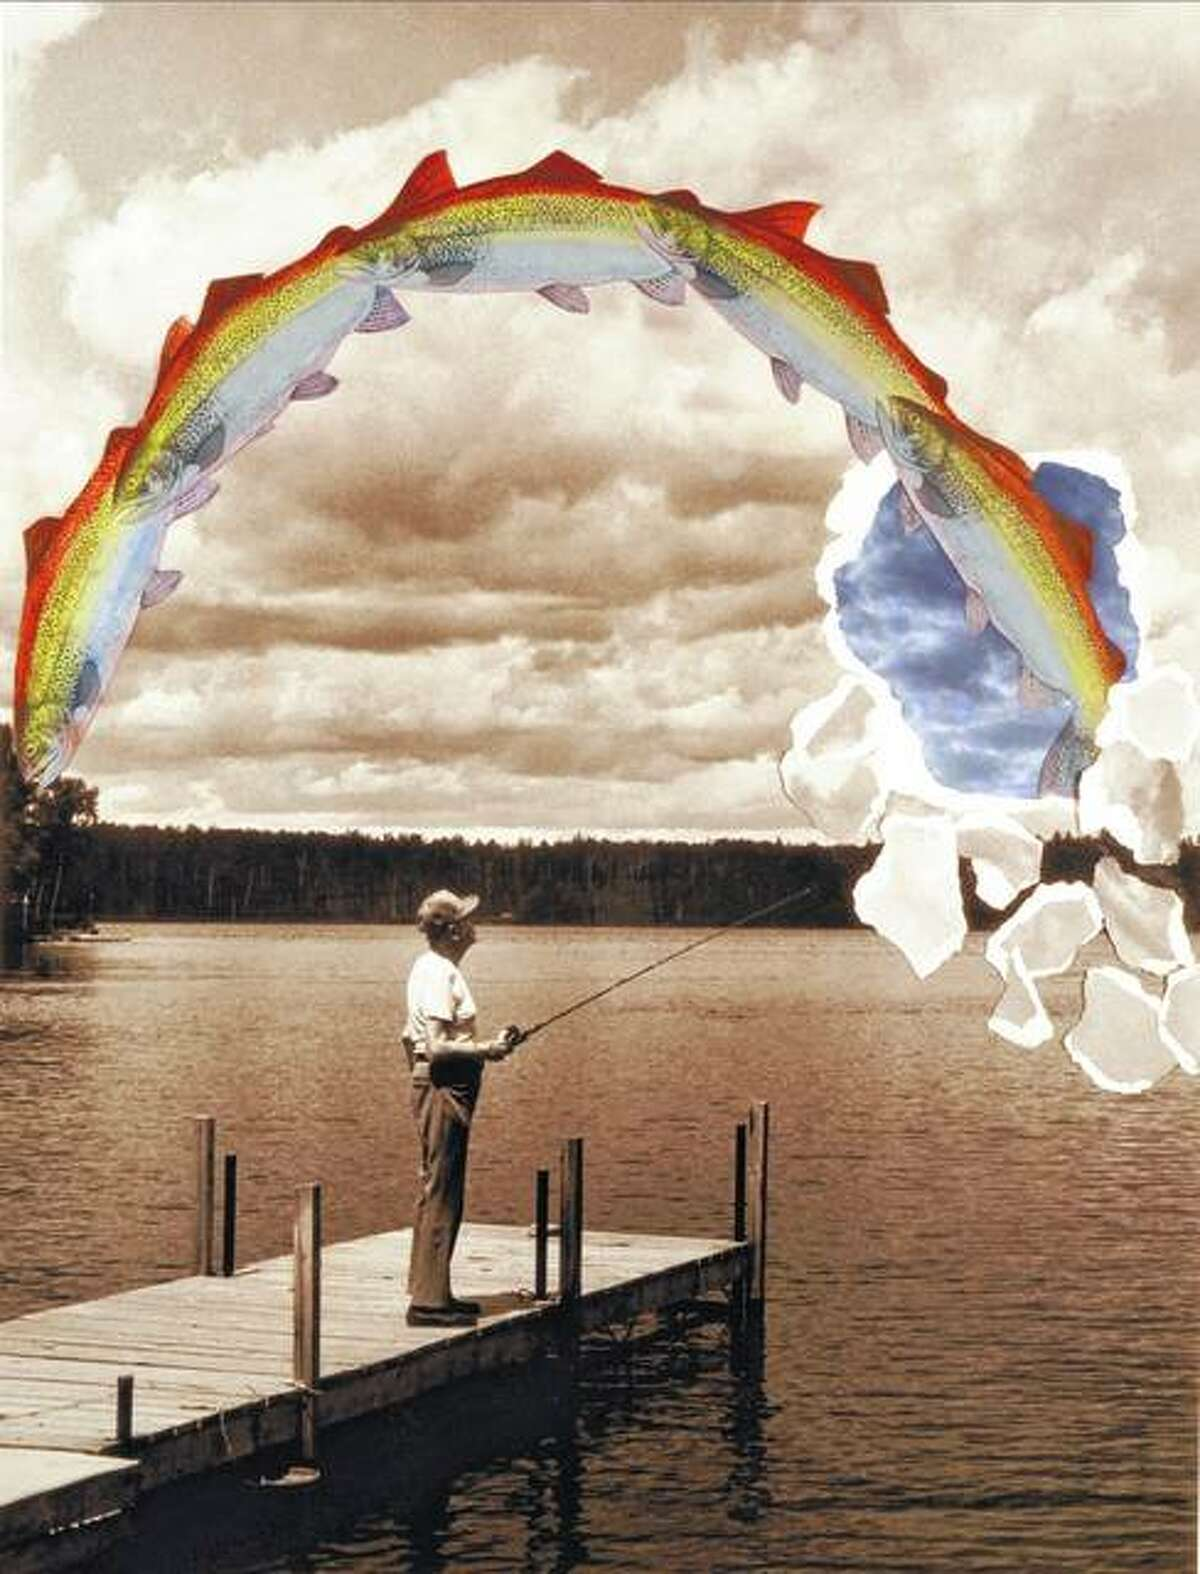 A photo of artist Lou Zale's father-in-law features the man fishing for rainbow trout in Minnesota. Zale put his own spin on the finished image.